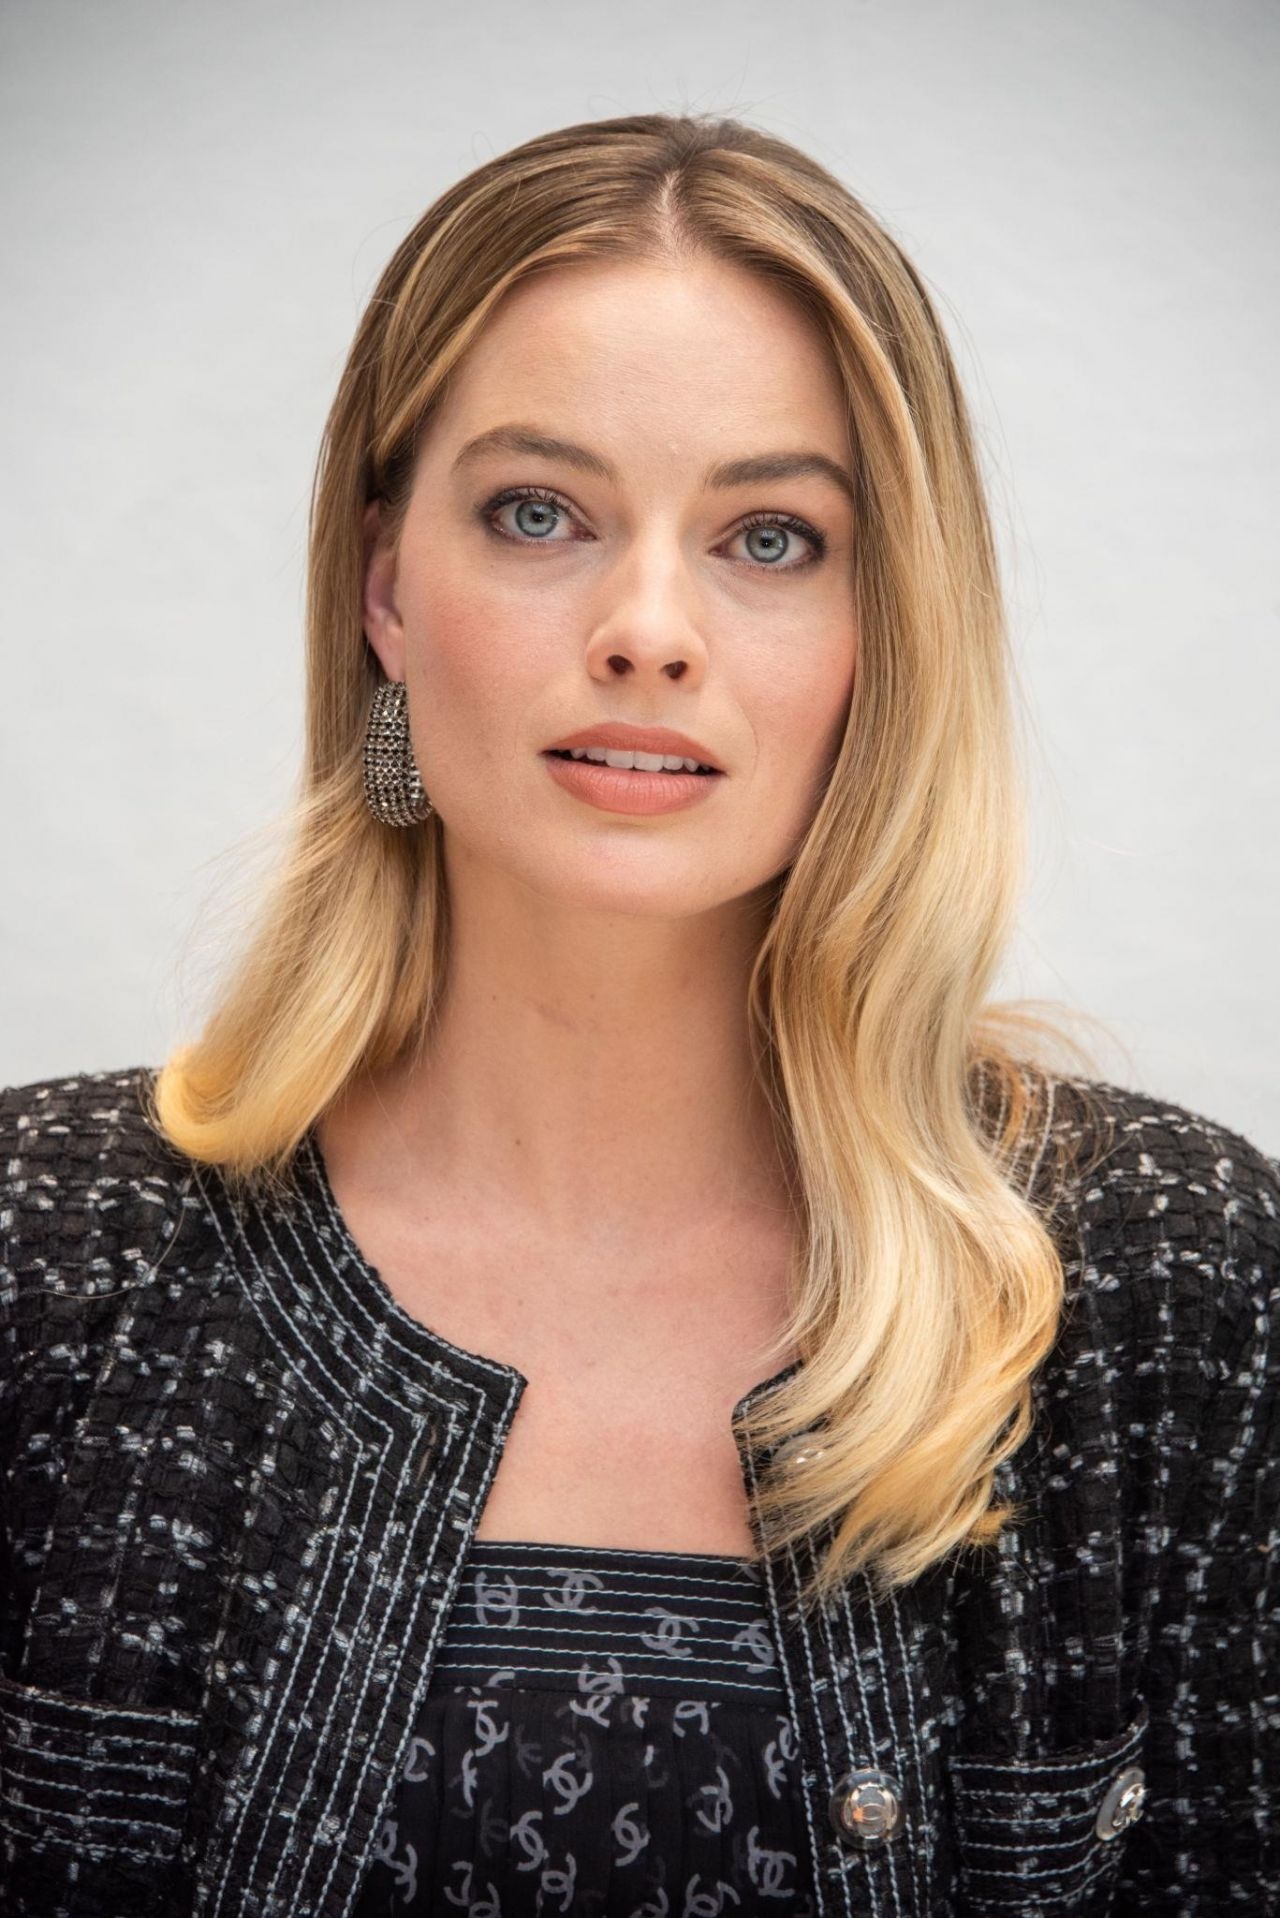 """Margot Robbie – """"Bombshell"""" Press Conference Photoshoot (more photos)"""